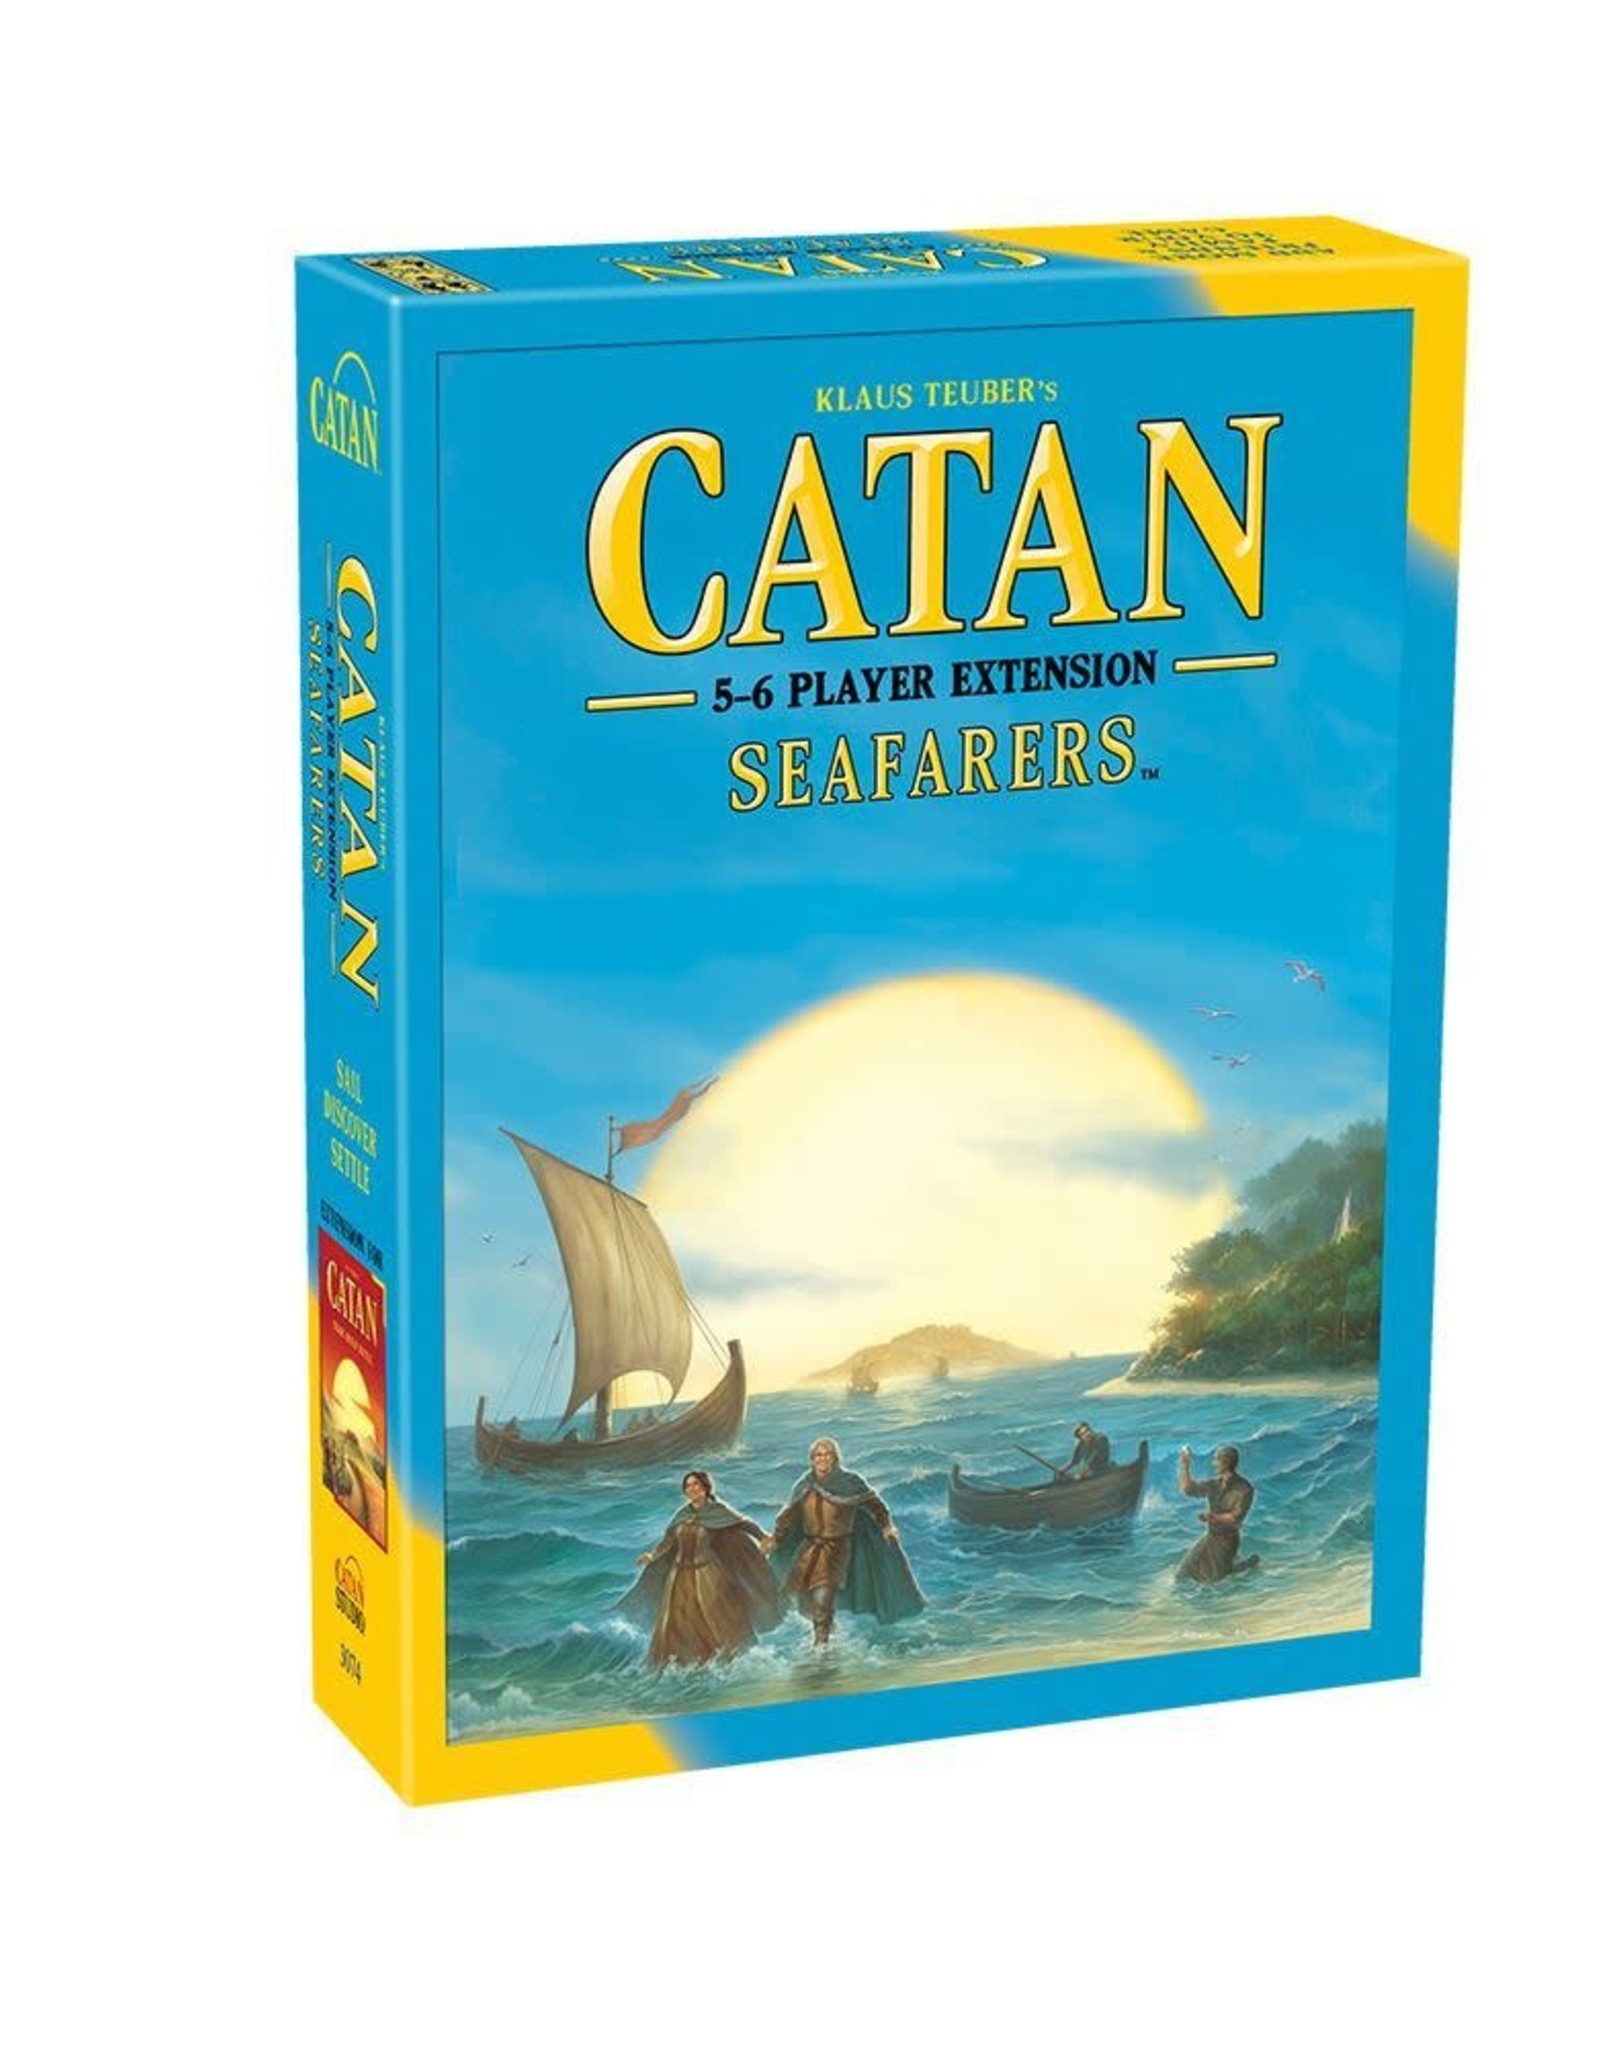 Catan Studio Catan Seafarers 5-6 Player Extension